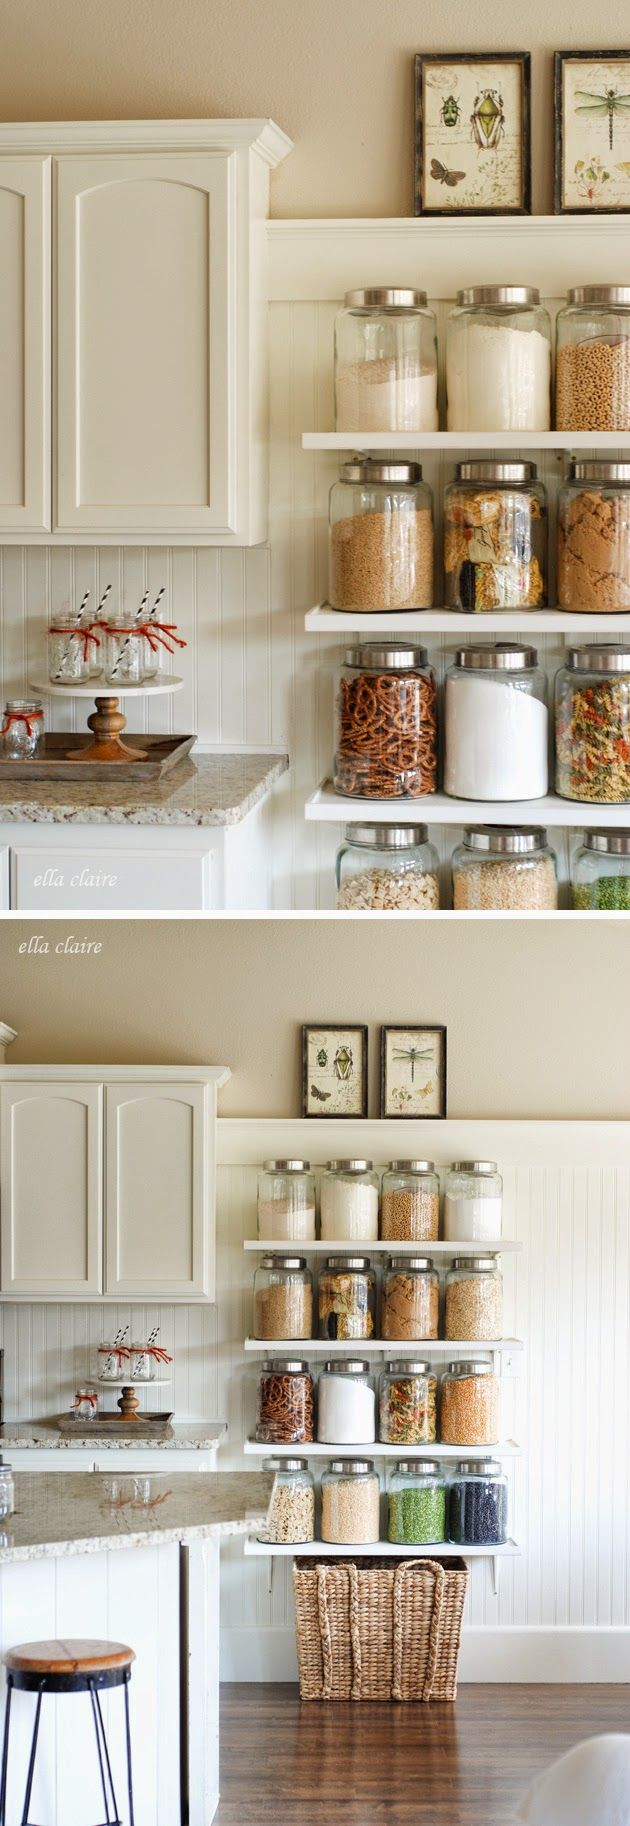 274 best DIY/Kitchen Decor images on Pinterest | Home, Kitchen and ...